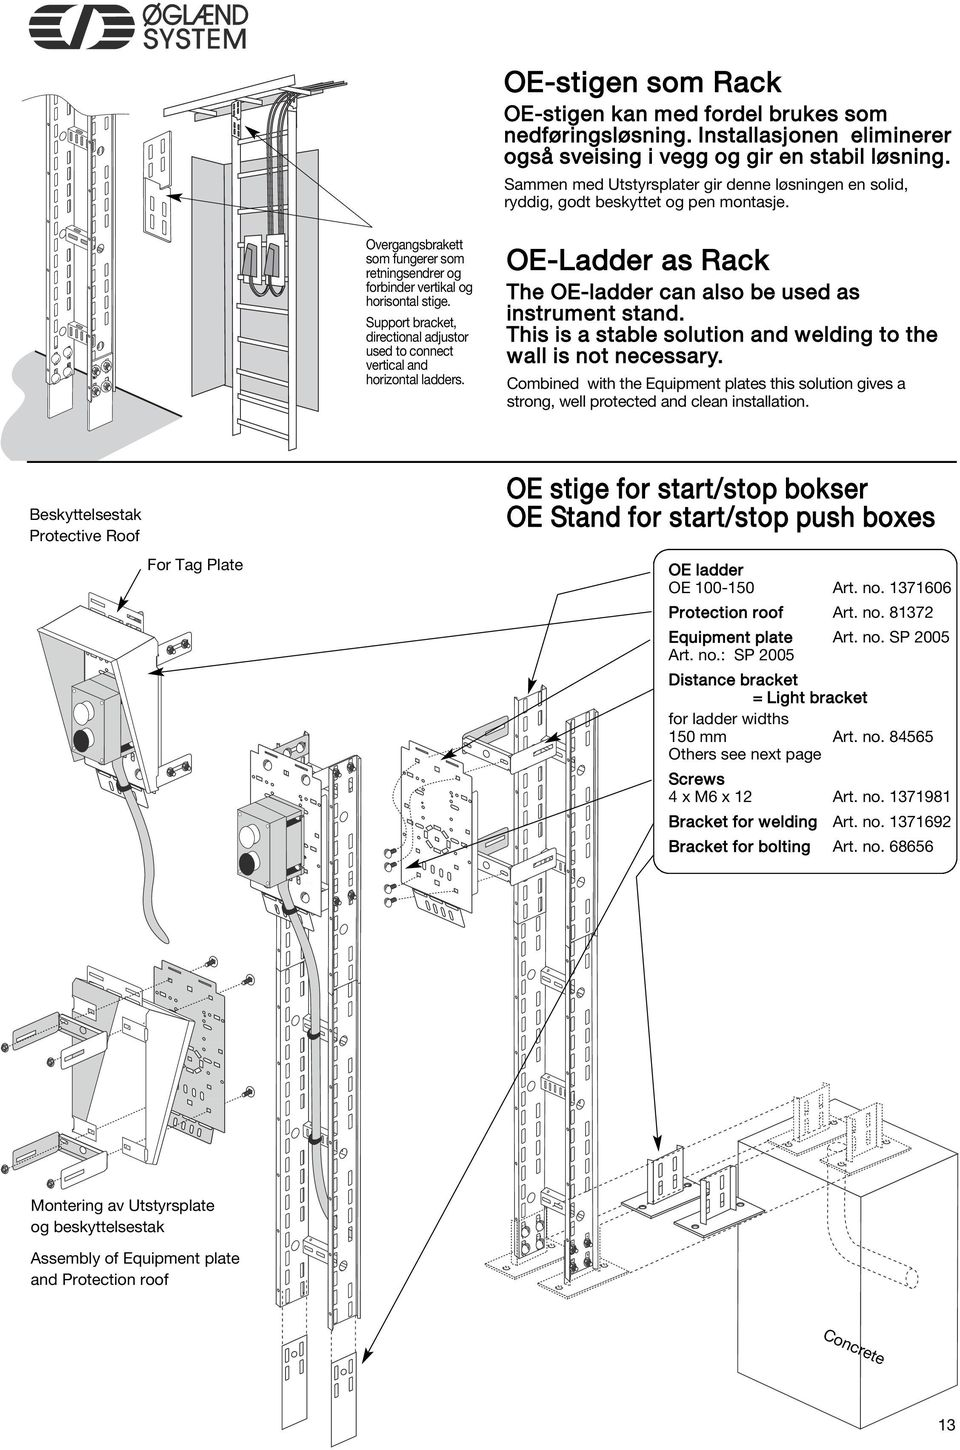 Support bracket, directional adjustor used to connect vertical and horizontal ladders. OE-Ladder as Rack The OE-ladder can also be used as instrument stand.